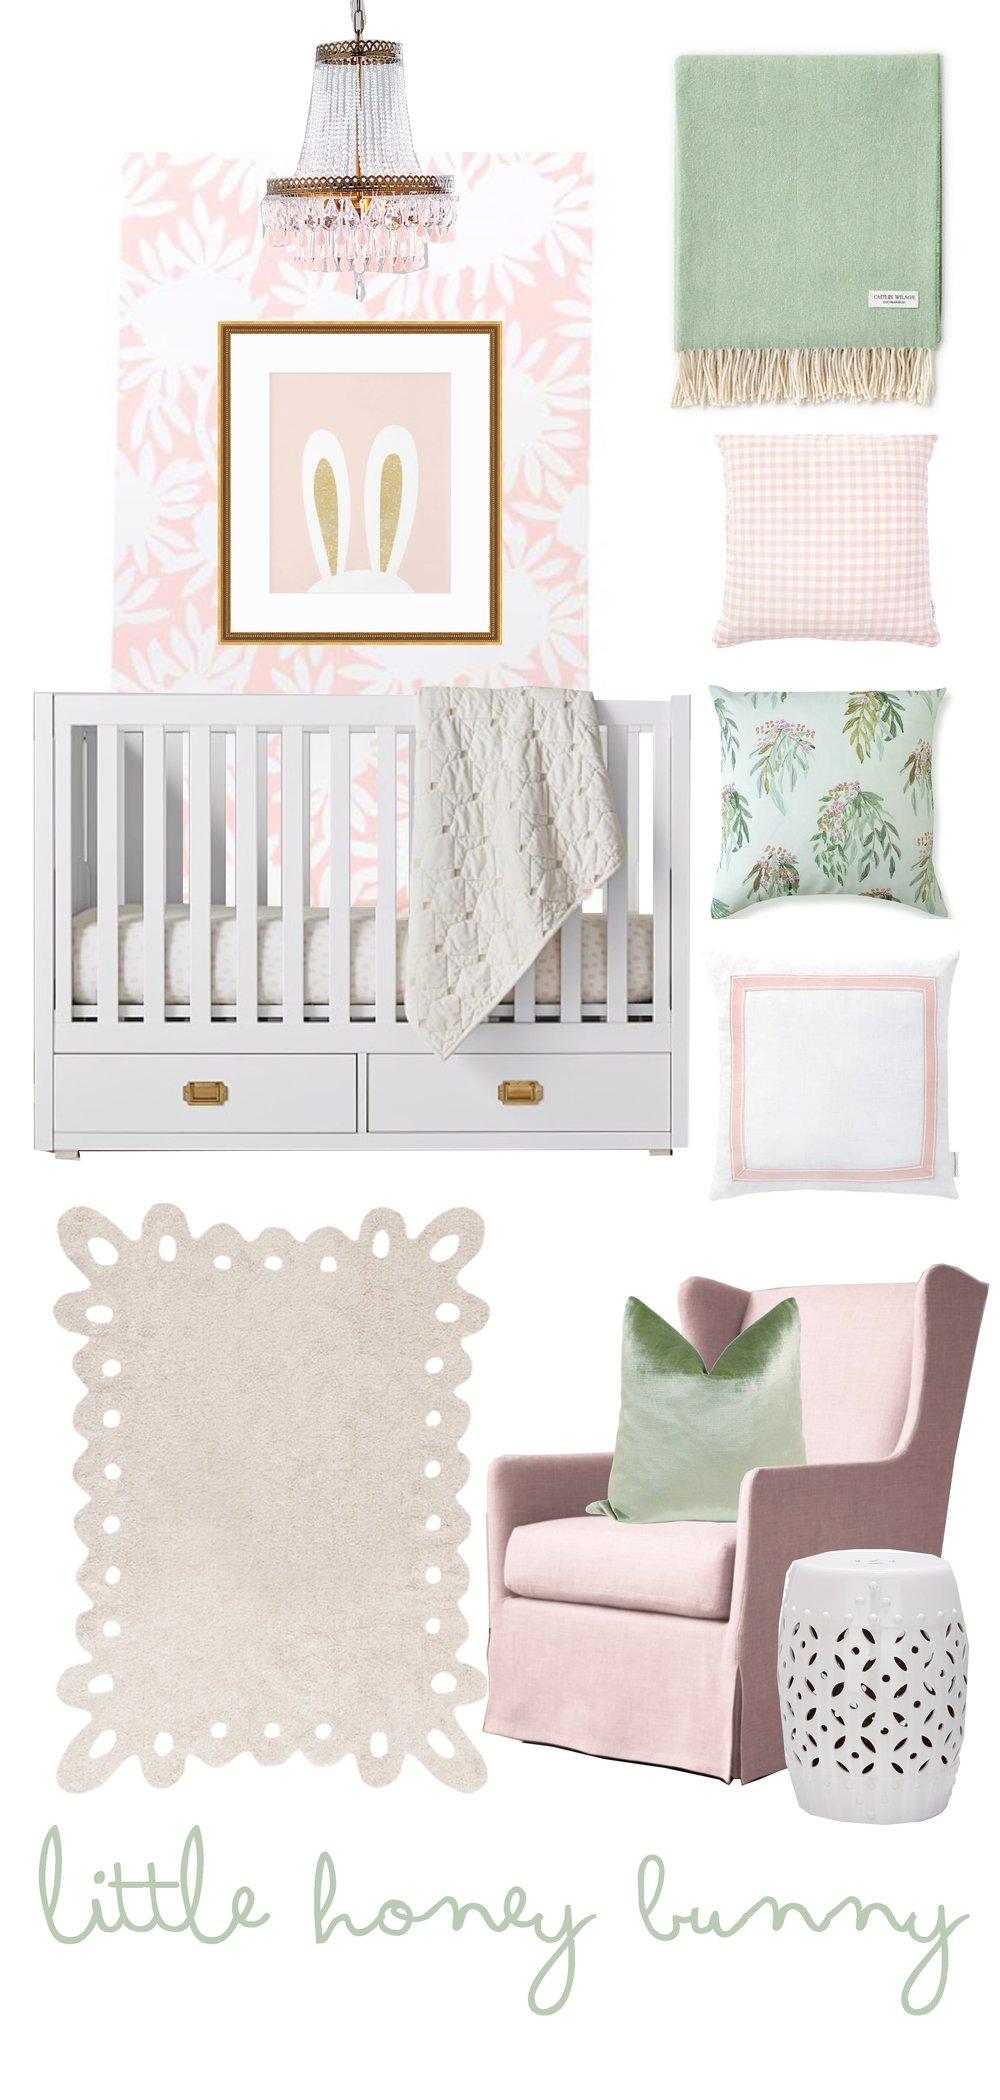 Bunny Inspired Nursery for little girls